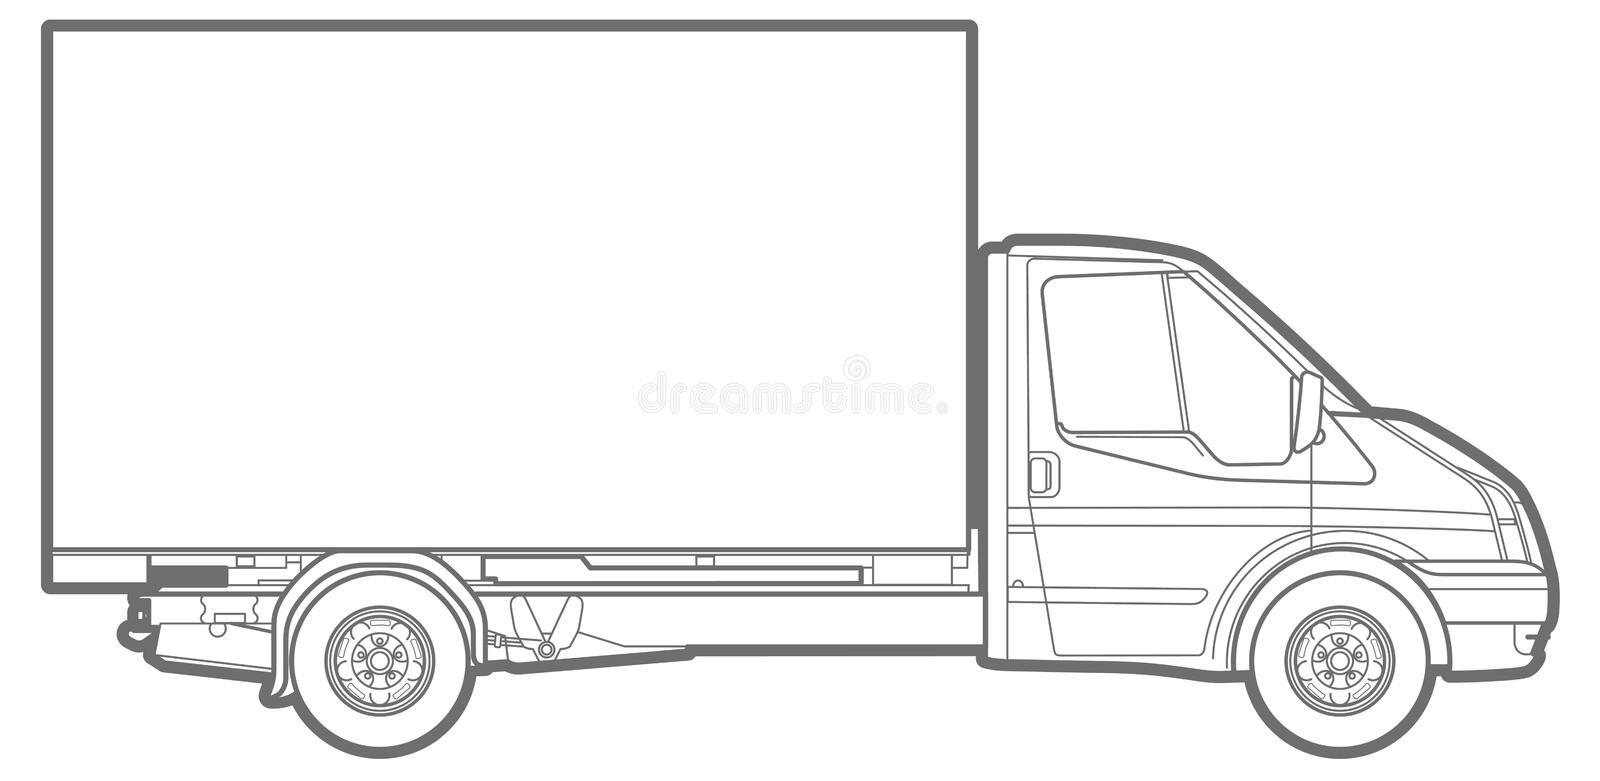 Download Line commercial truck stock illustration. Illustration of silhouette - 79156725